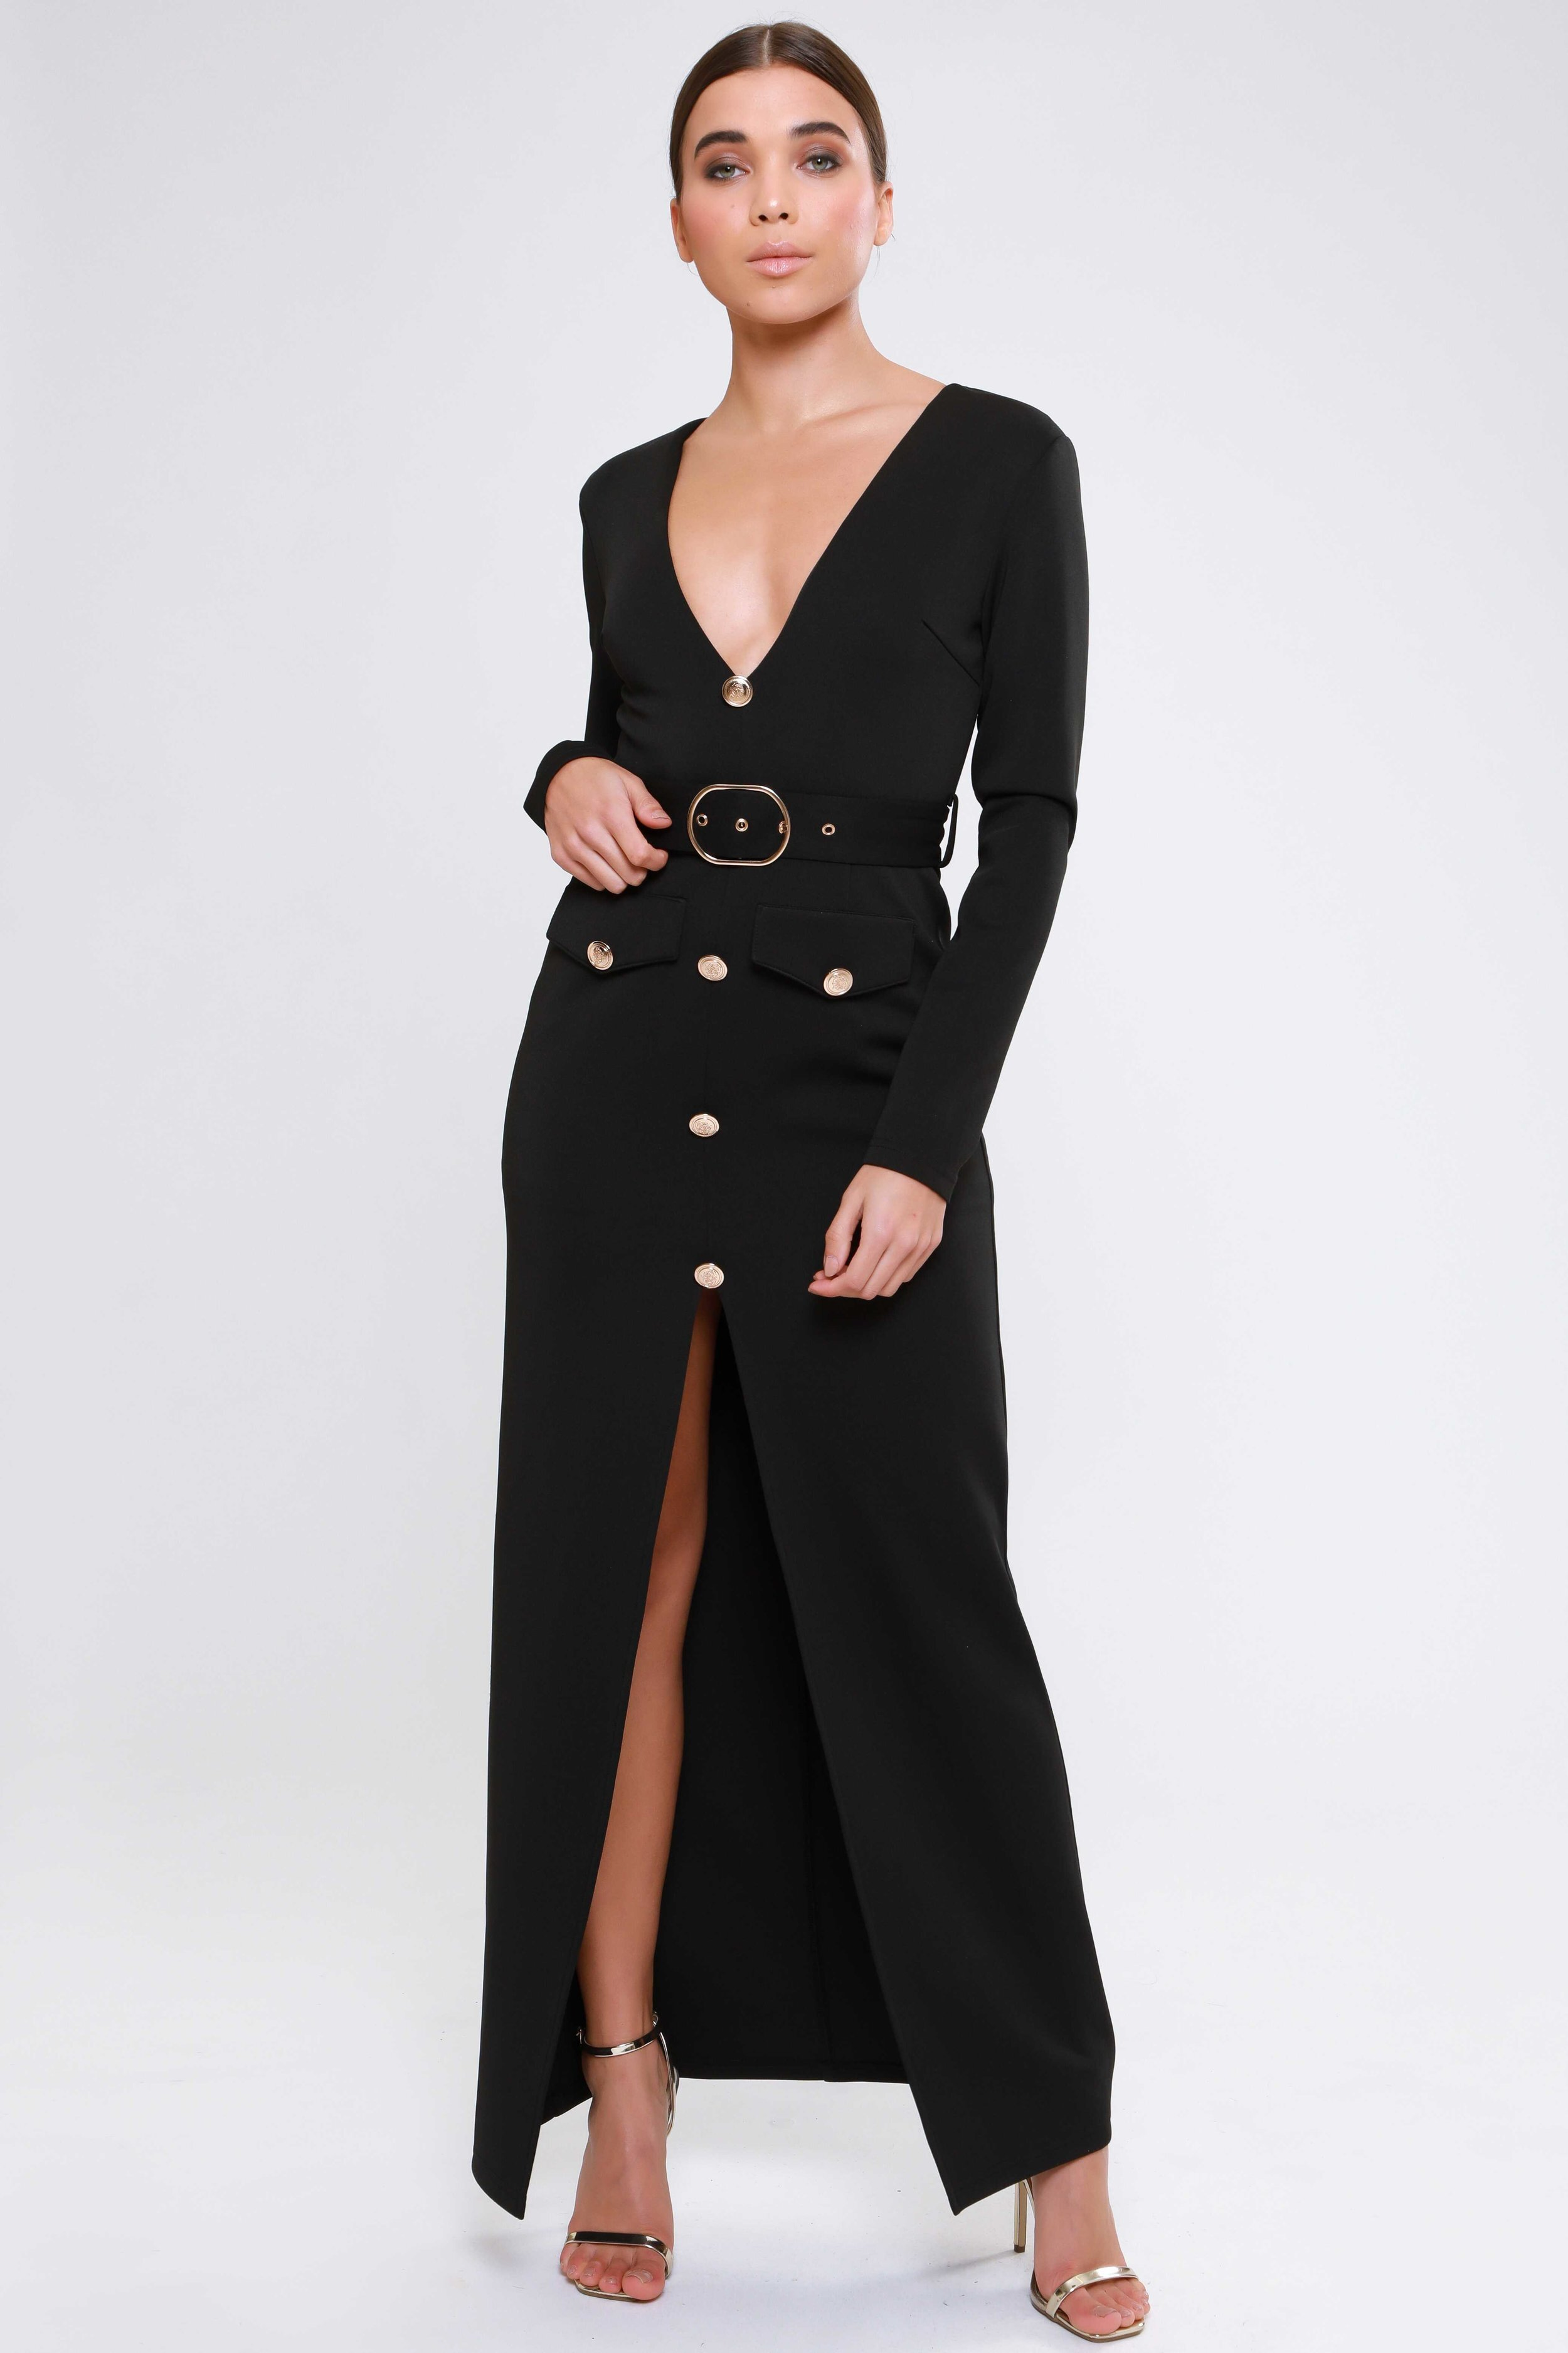 Belted Plunge  Maxi Dress   £69.00